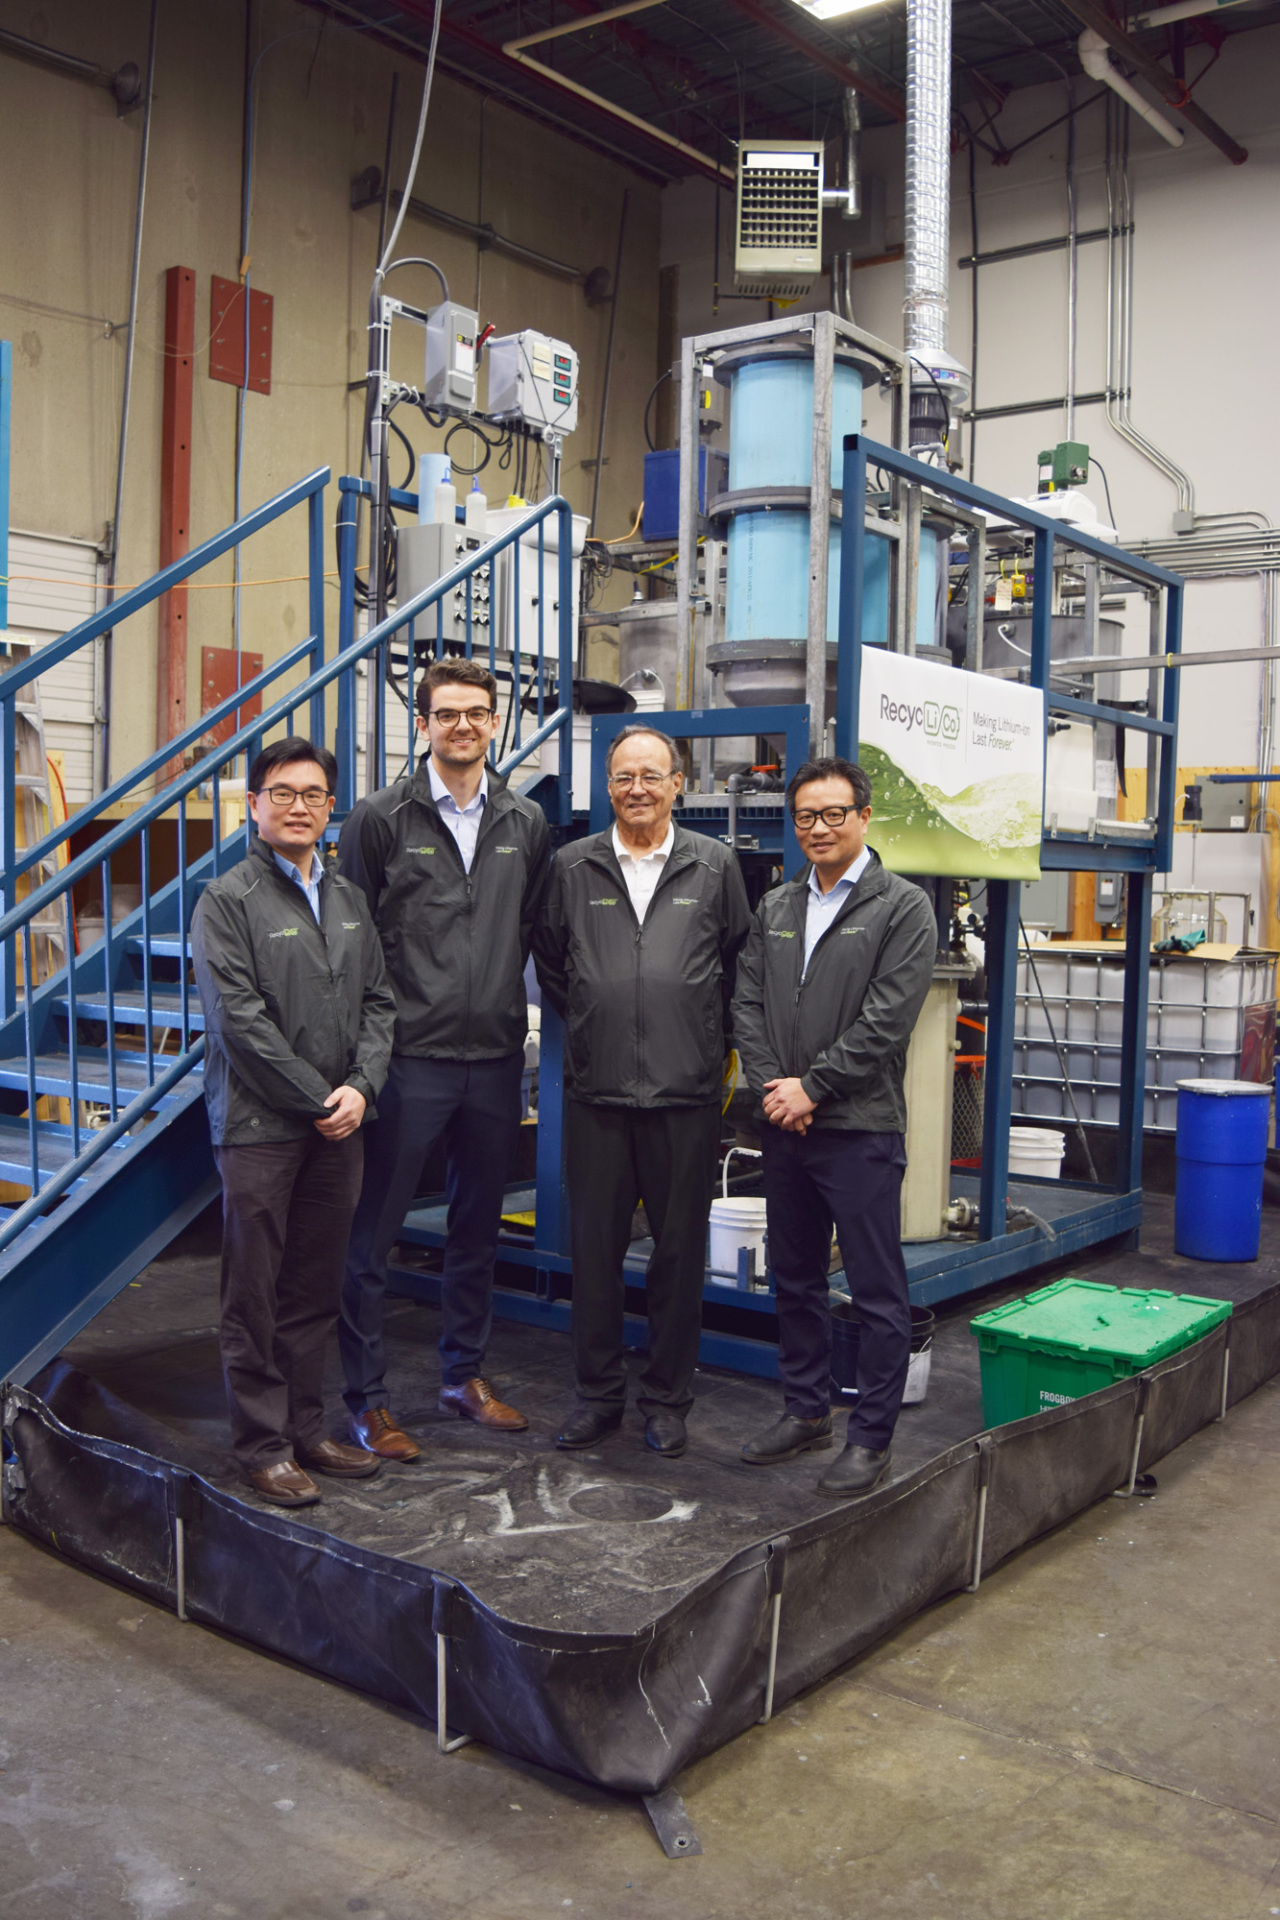 Cap/ American Manganese CEO Larry Reaugh (second from right) and chief technology officer Zarko Meseldzija (third from right) pose for a photo in front of the company's battery recycling system. (American Manganese)